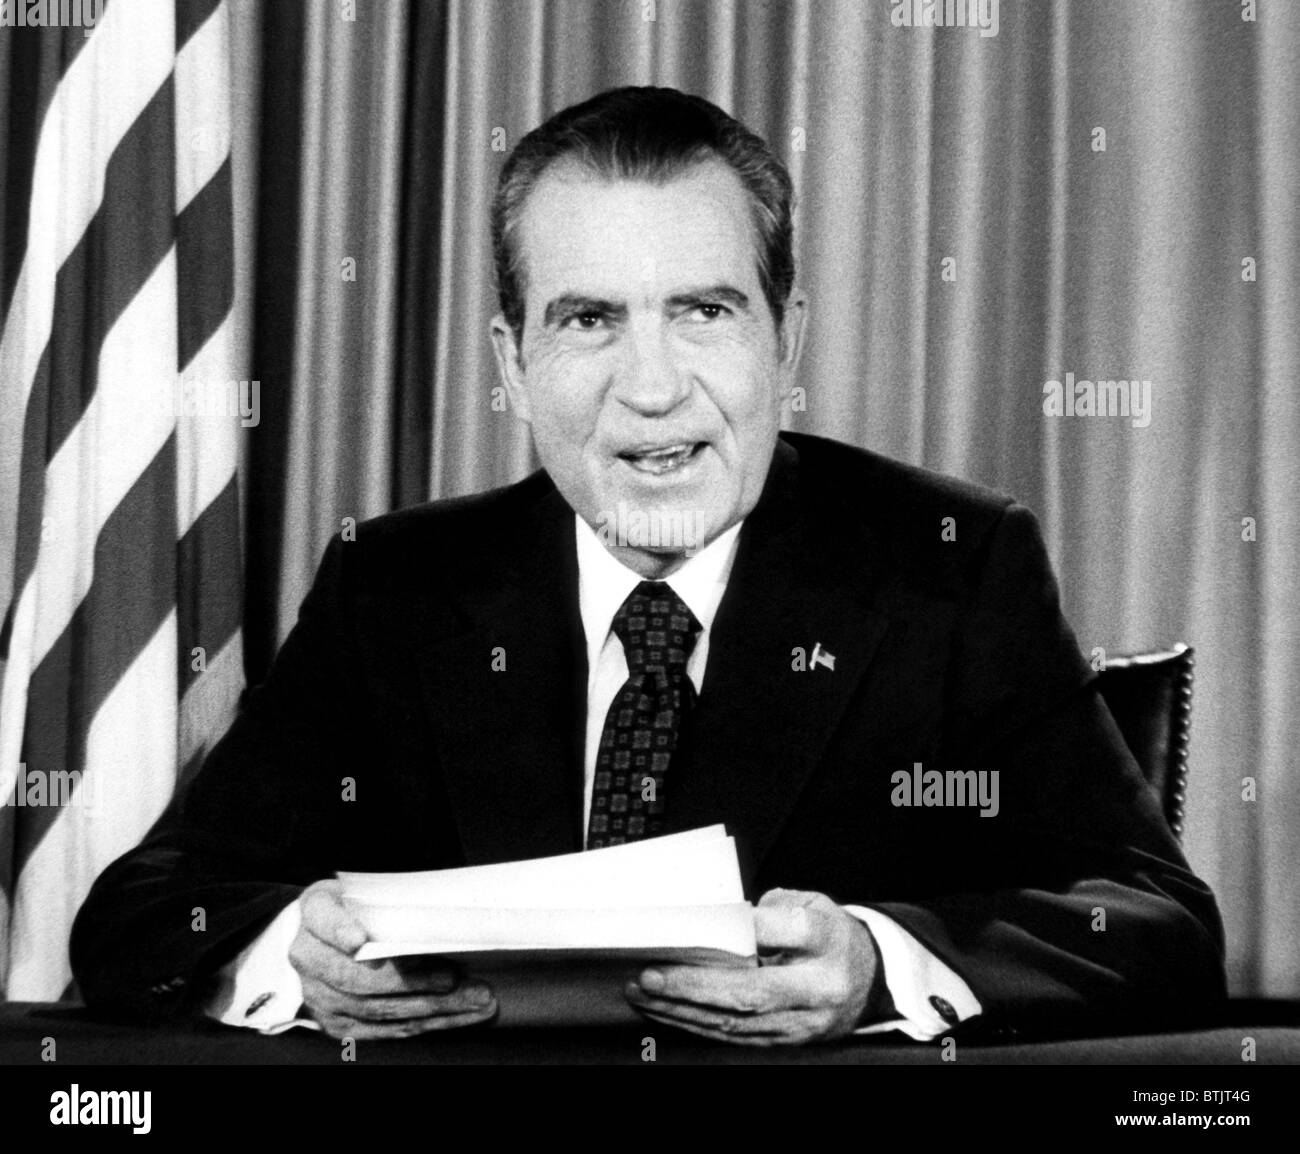 In a nationally televised address, U.S. President Richard Nixon declares his innocence in the Watergate scandal, - Stock Image